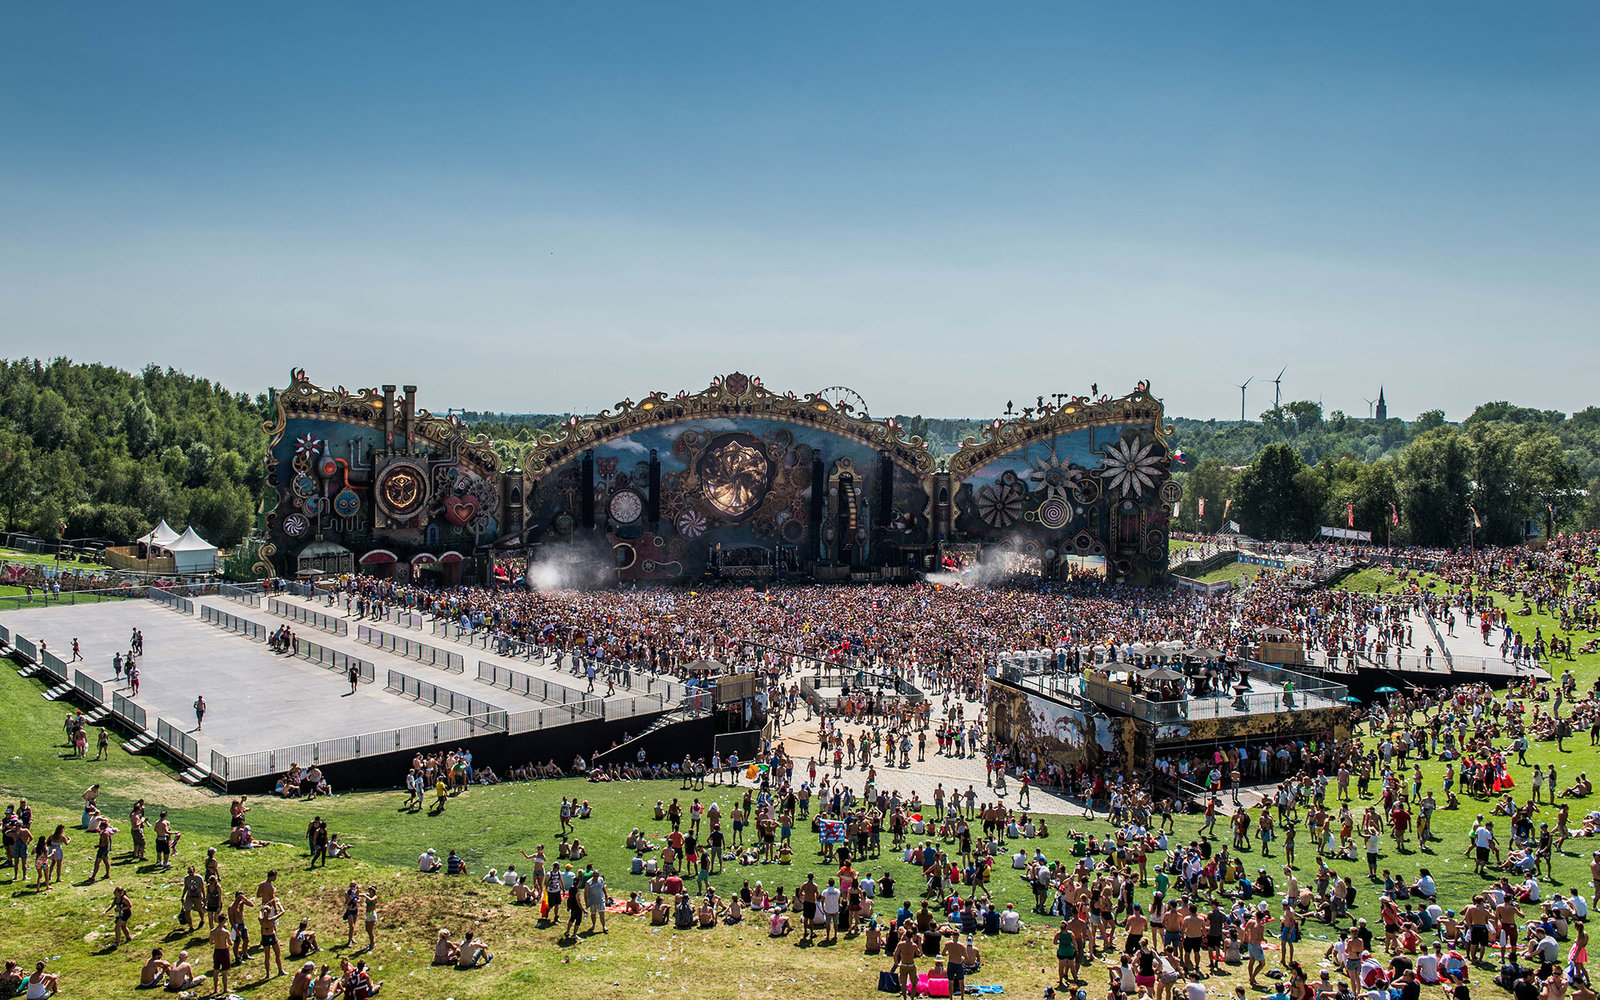 People attend a performance on the mainstage on the third day of the second weekend of the 10th edition of the Tomorrowland electronic music festival on July 27, 2014, at the 'De Schorre' terrain in Boom. The Festival runs over two weekends, from July 18